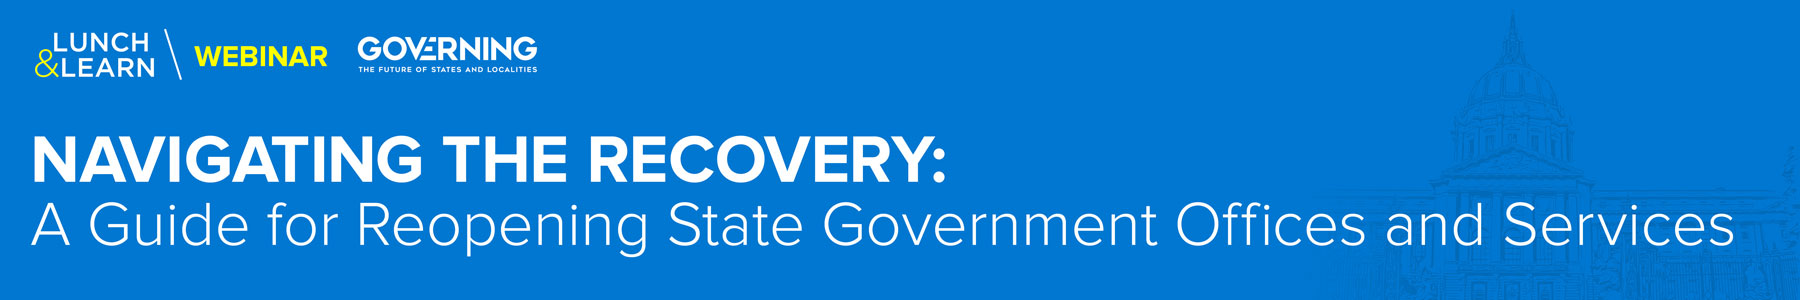 Navigating the Recovery: A Guide for Reopening State Government Offices and Services